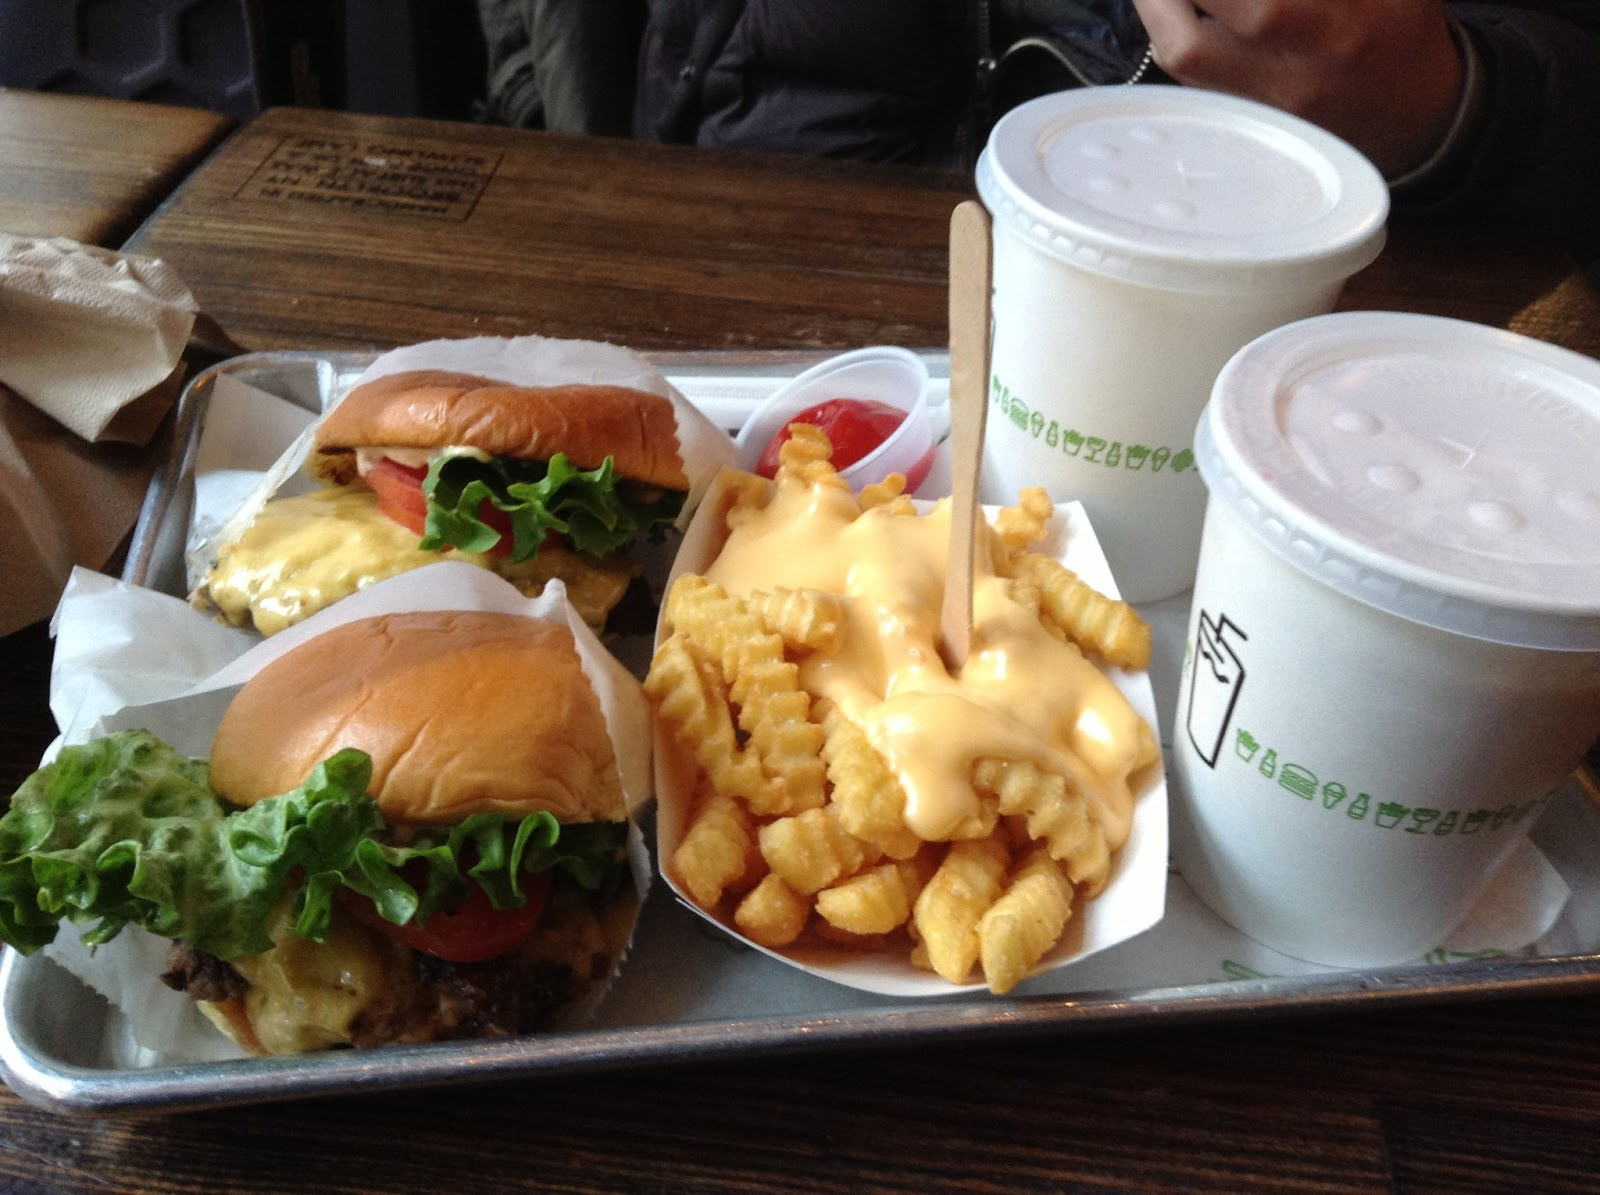 Hard To Please Food Blog & More: Shake Shack - New York